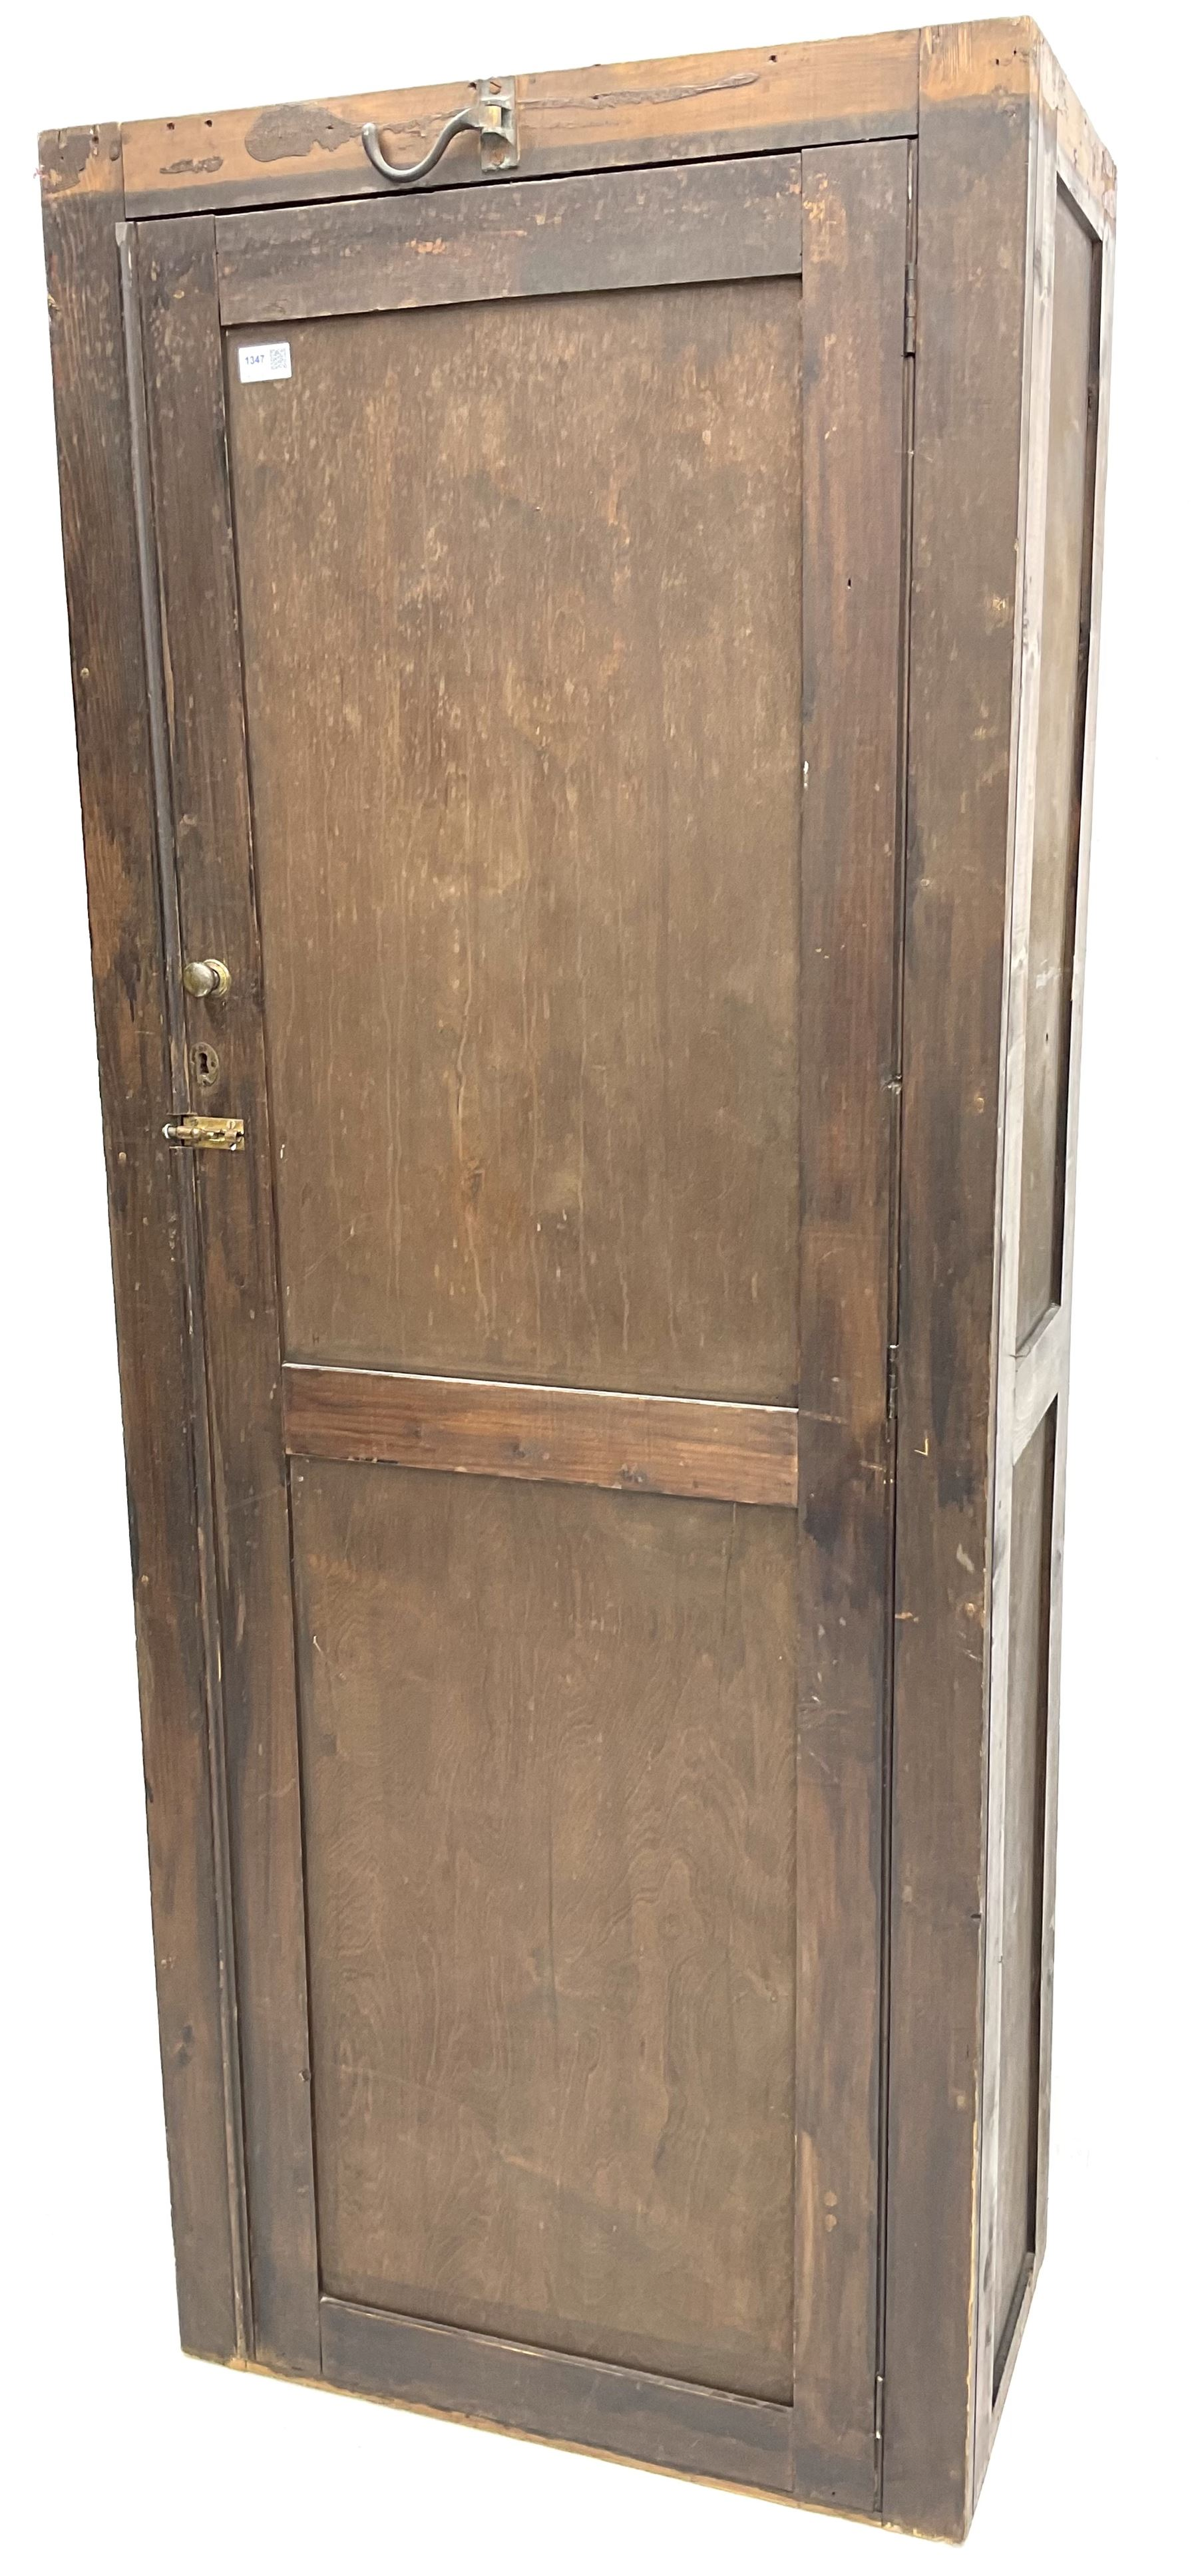 Early 20th century large stained pine school cupboard - Image 2 of 2